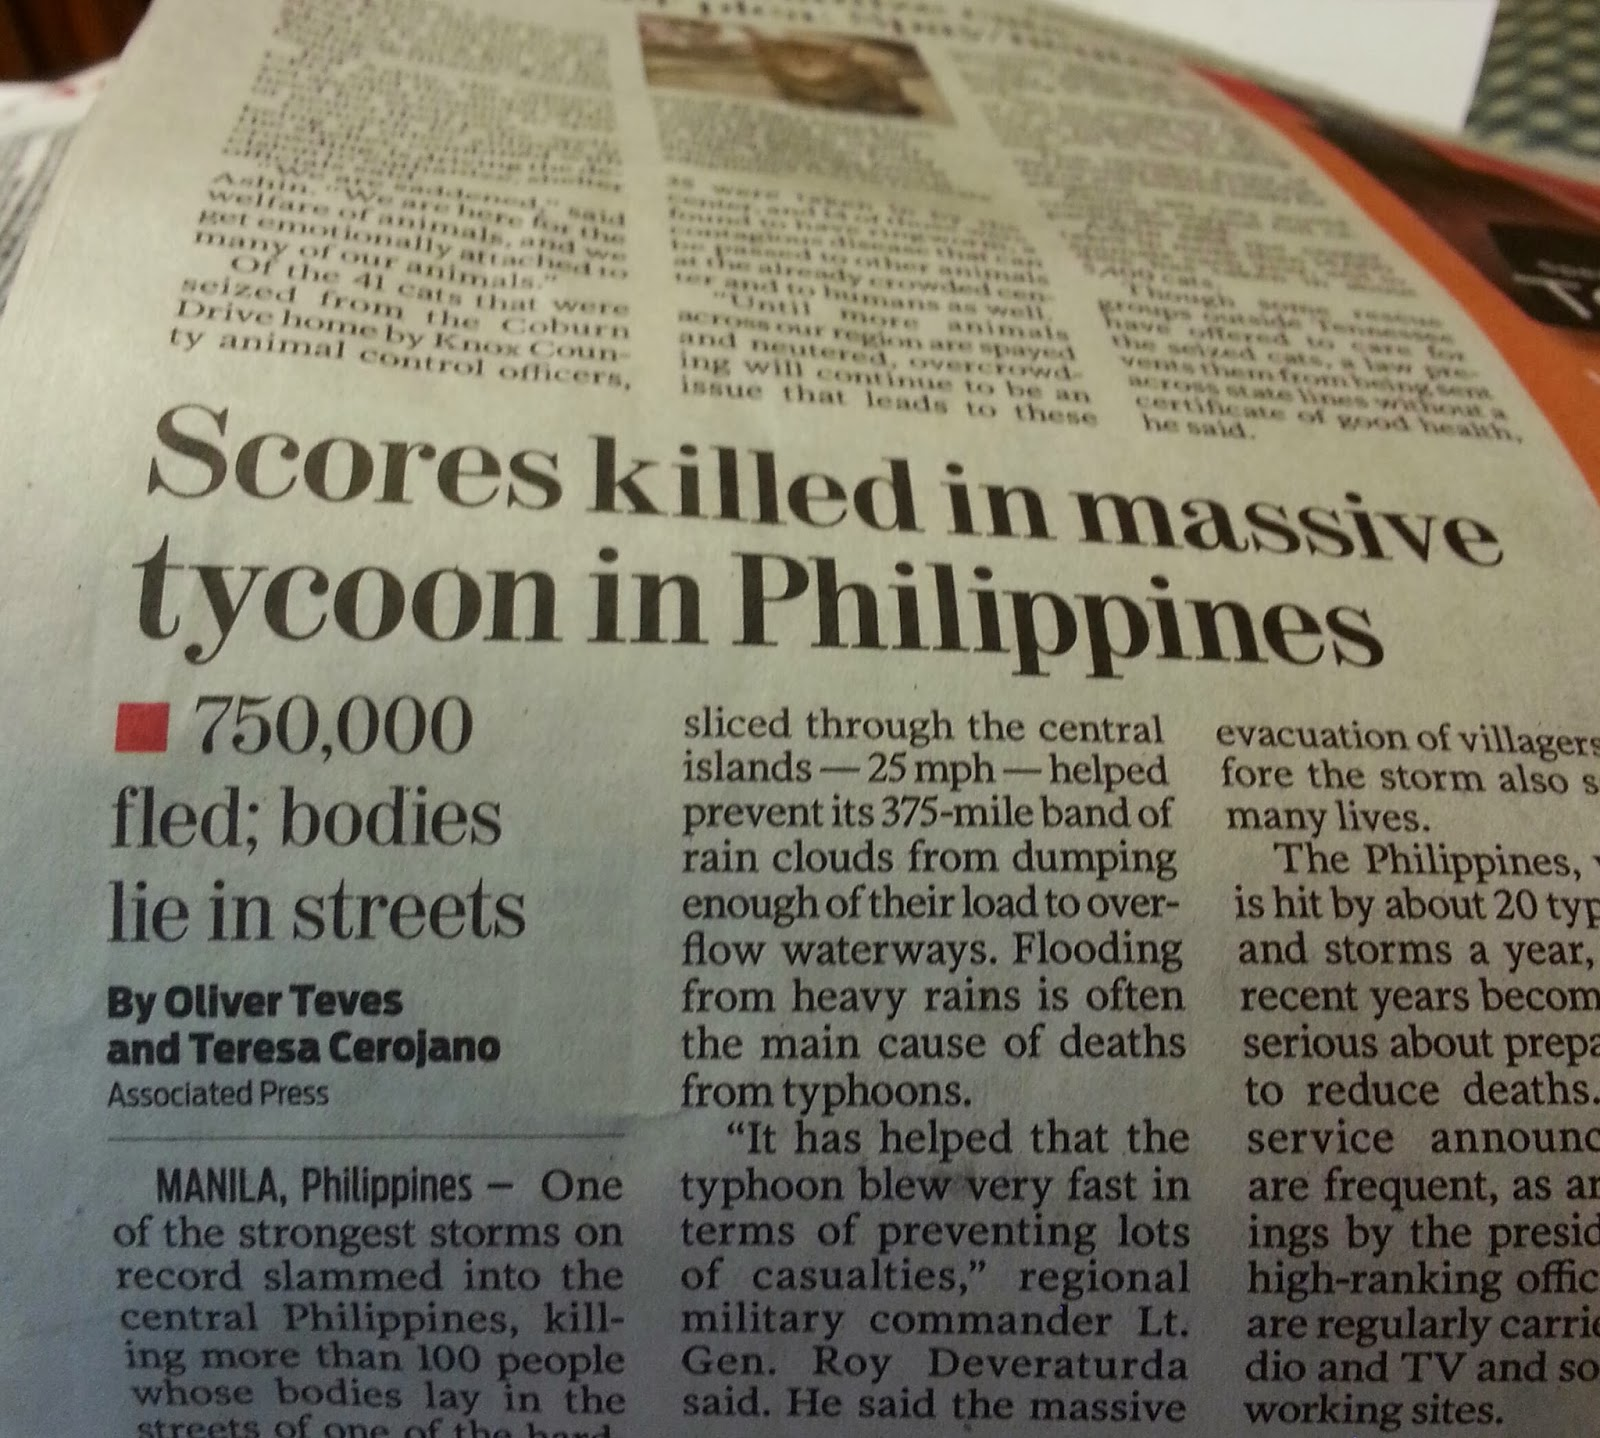 scores killed in massive tycoon in Philippines